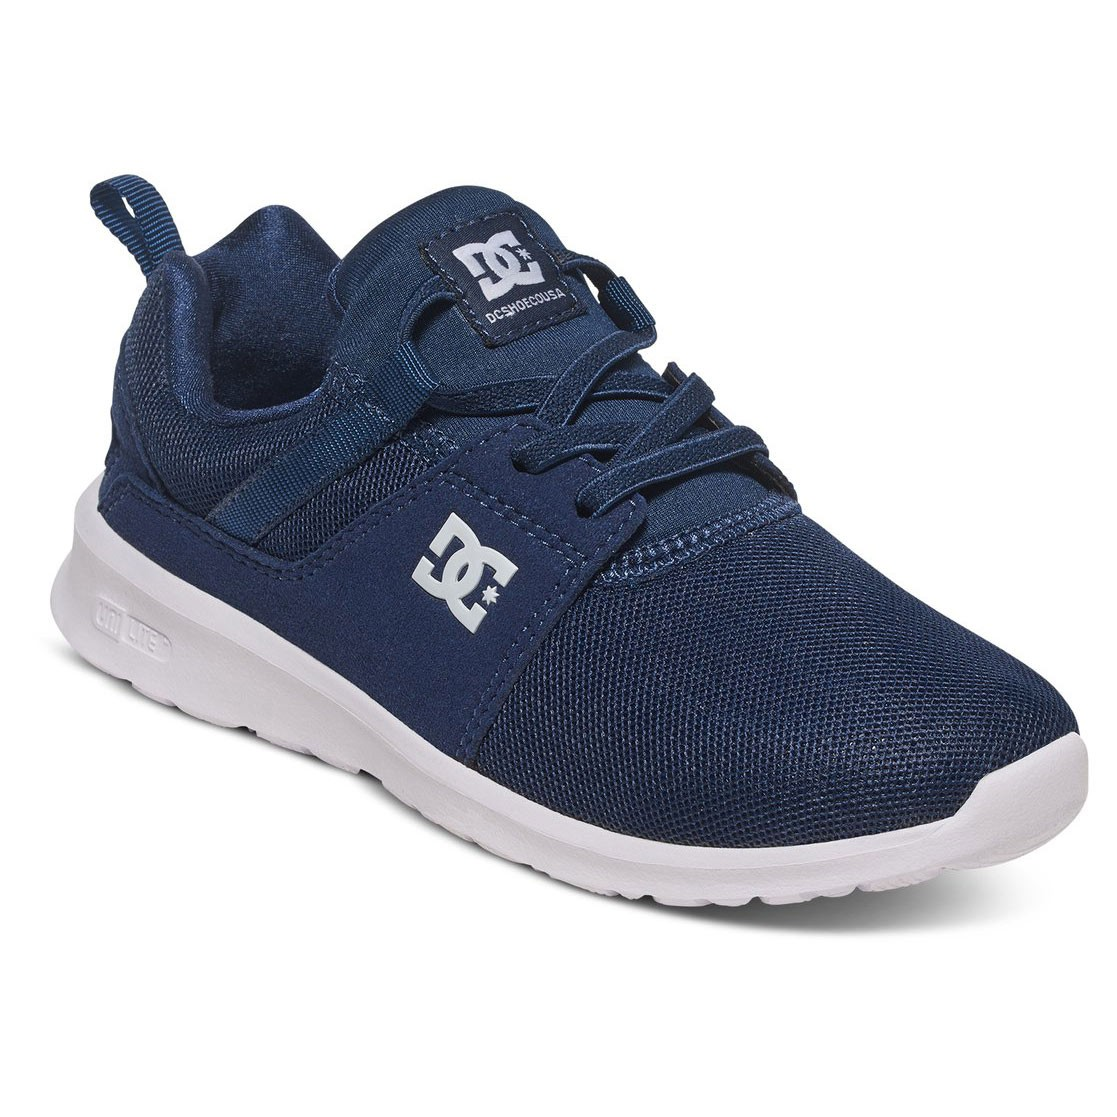 Tenisky DC Heathrow Boys navy